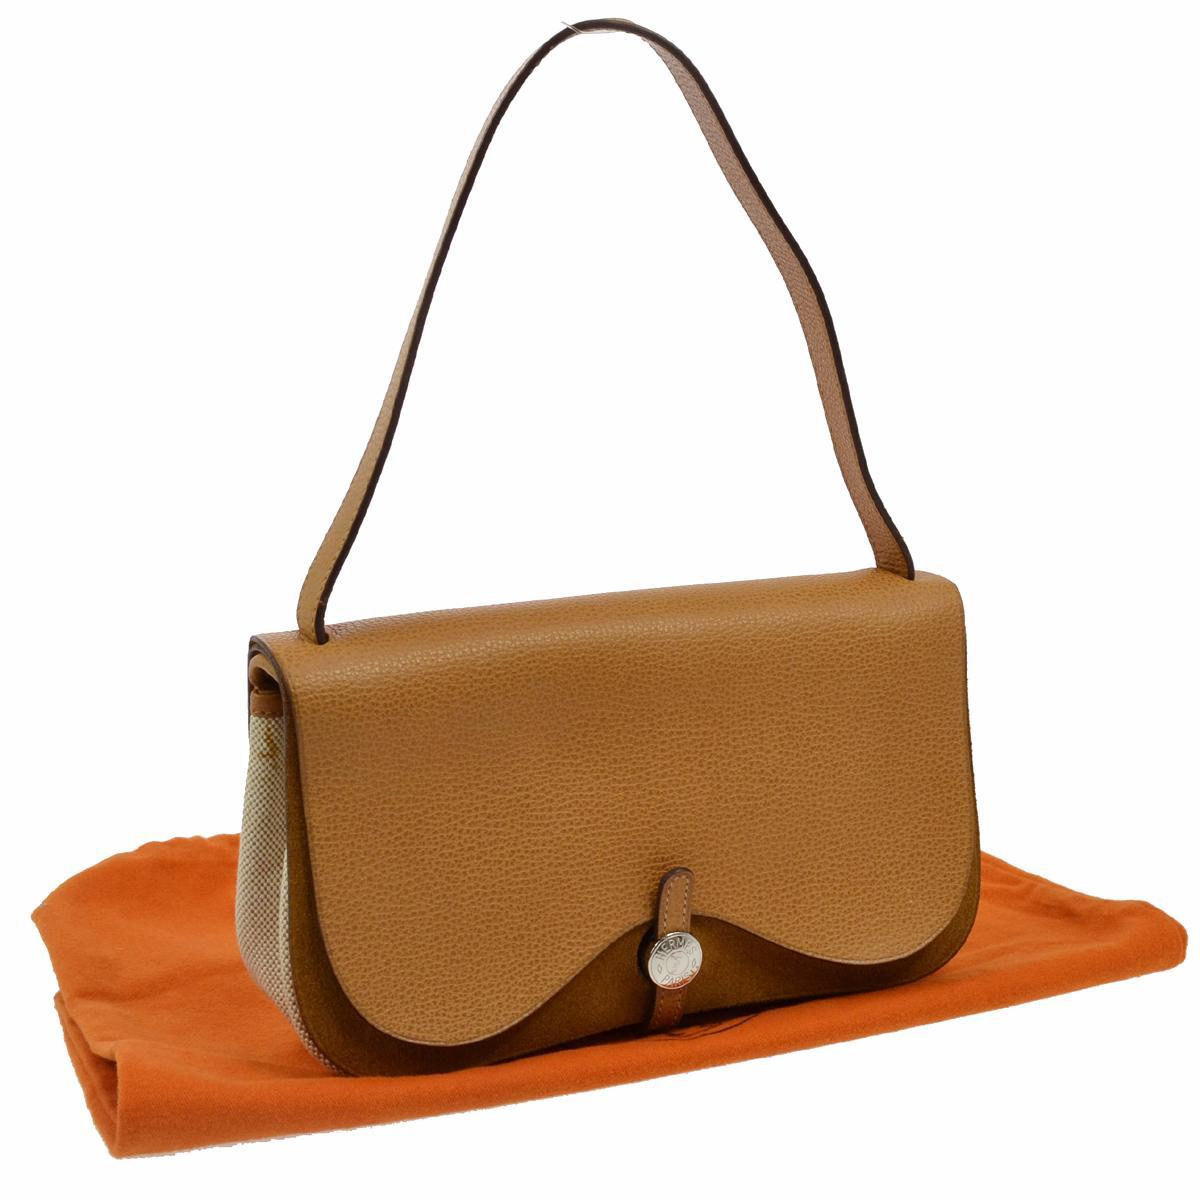 Image result for hermes handbag